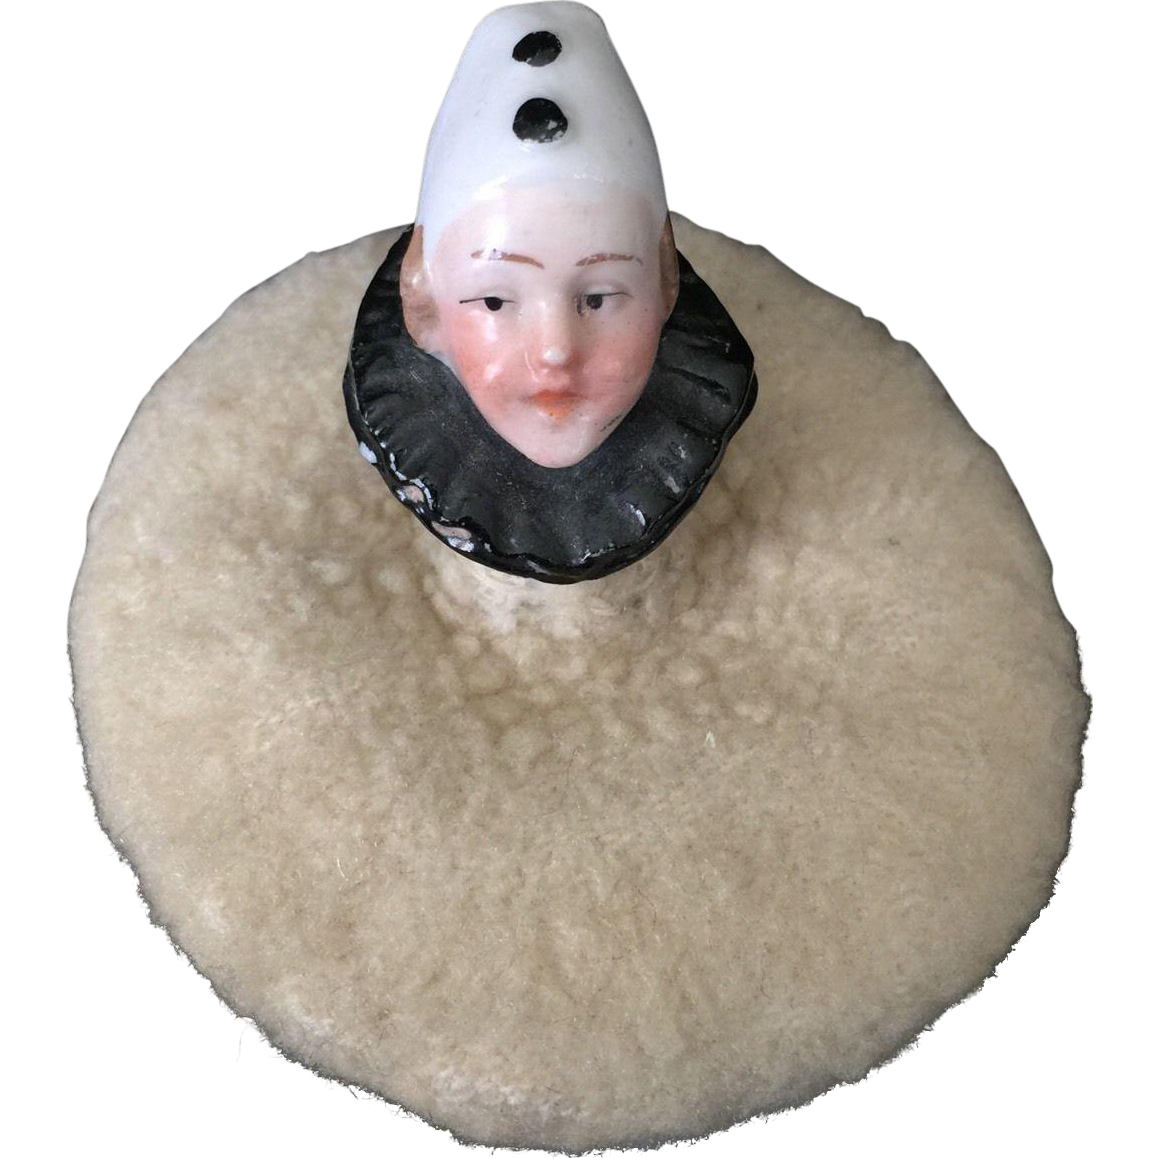 Pierrot Clown Half Doll Powder Puff or Pincushion